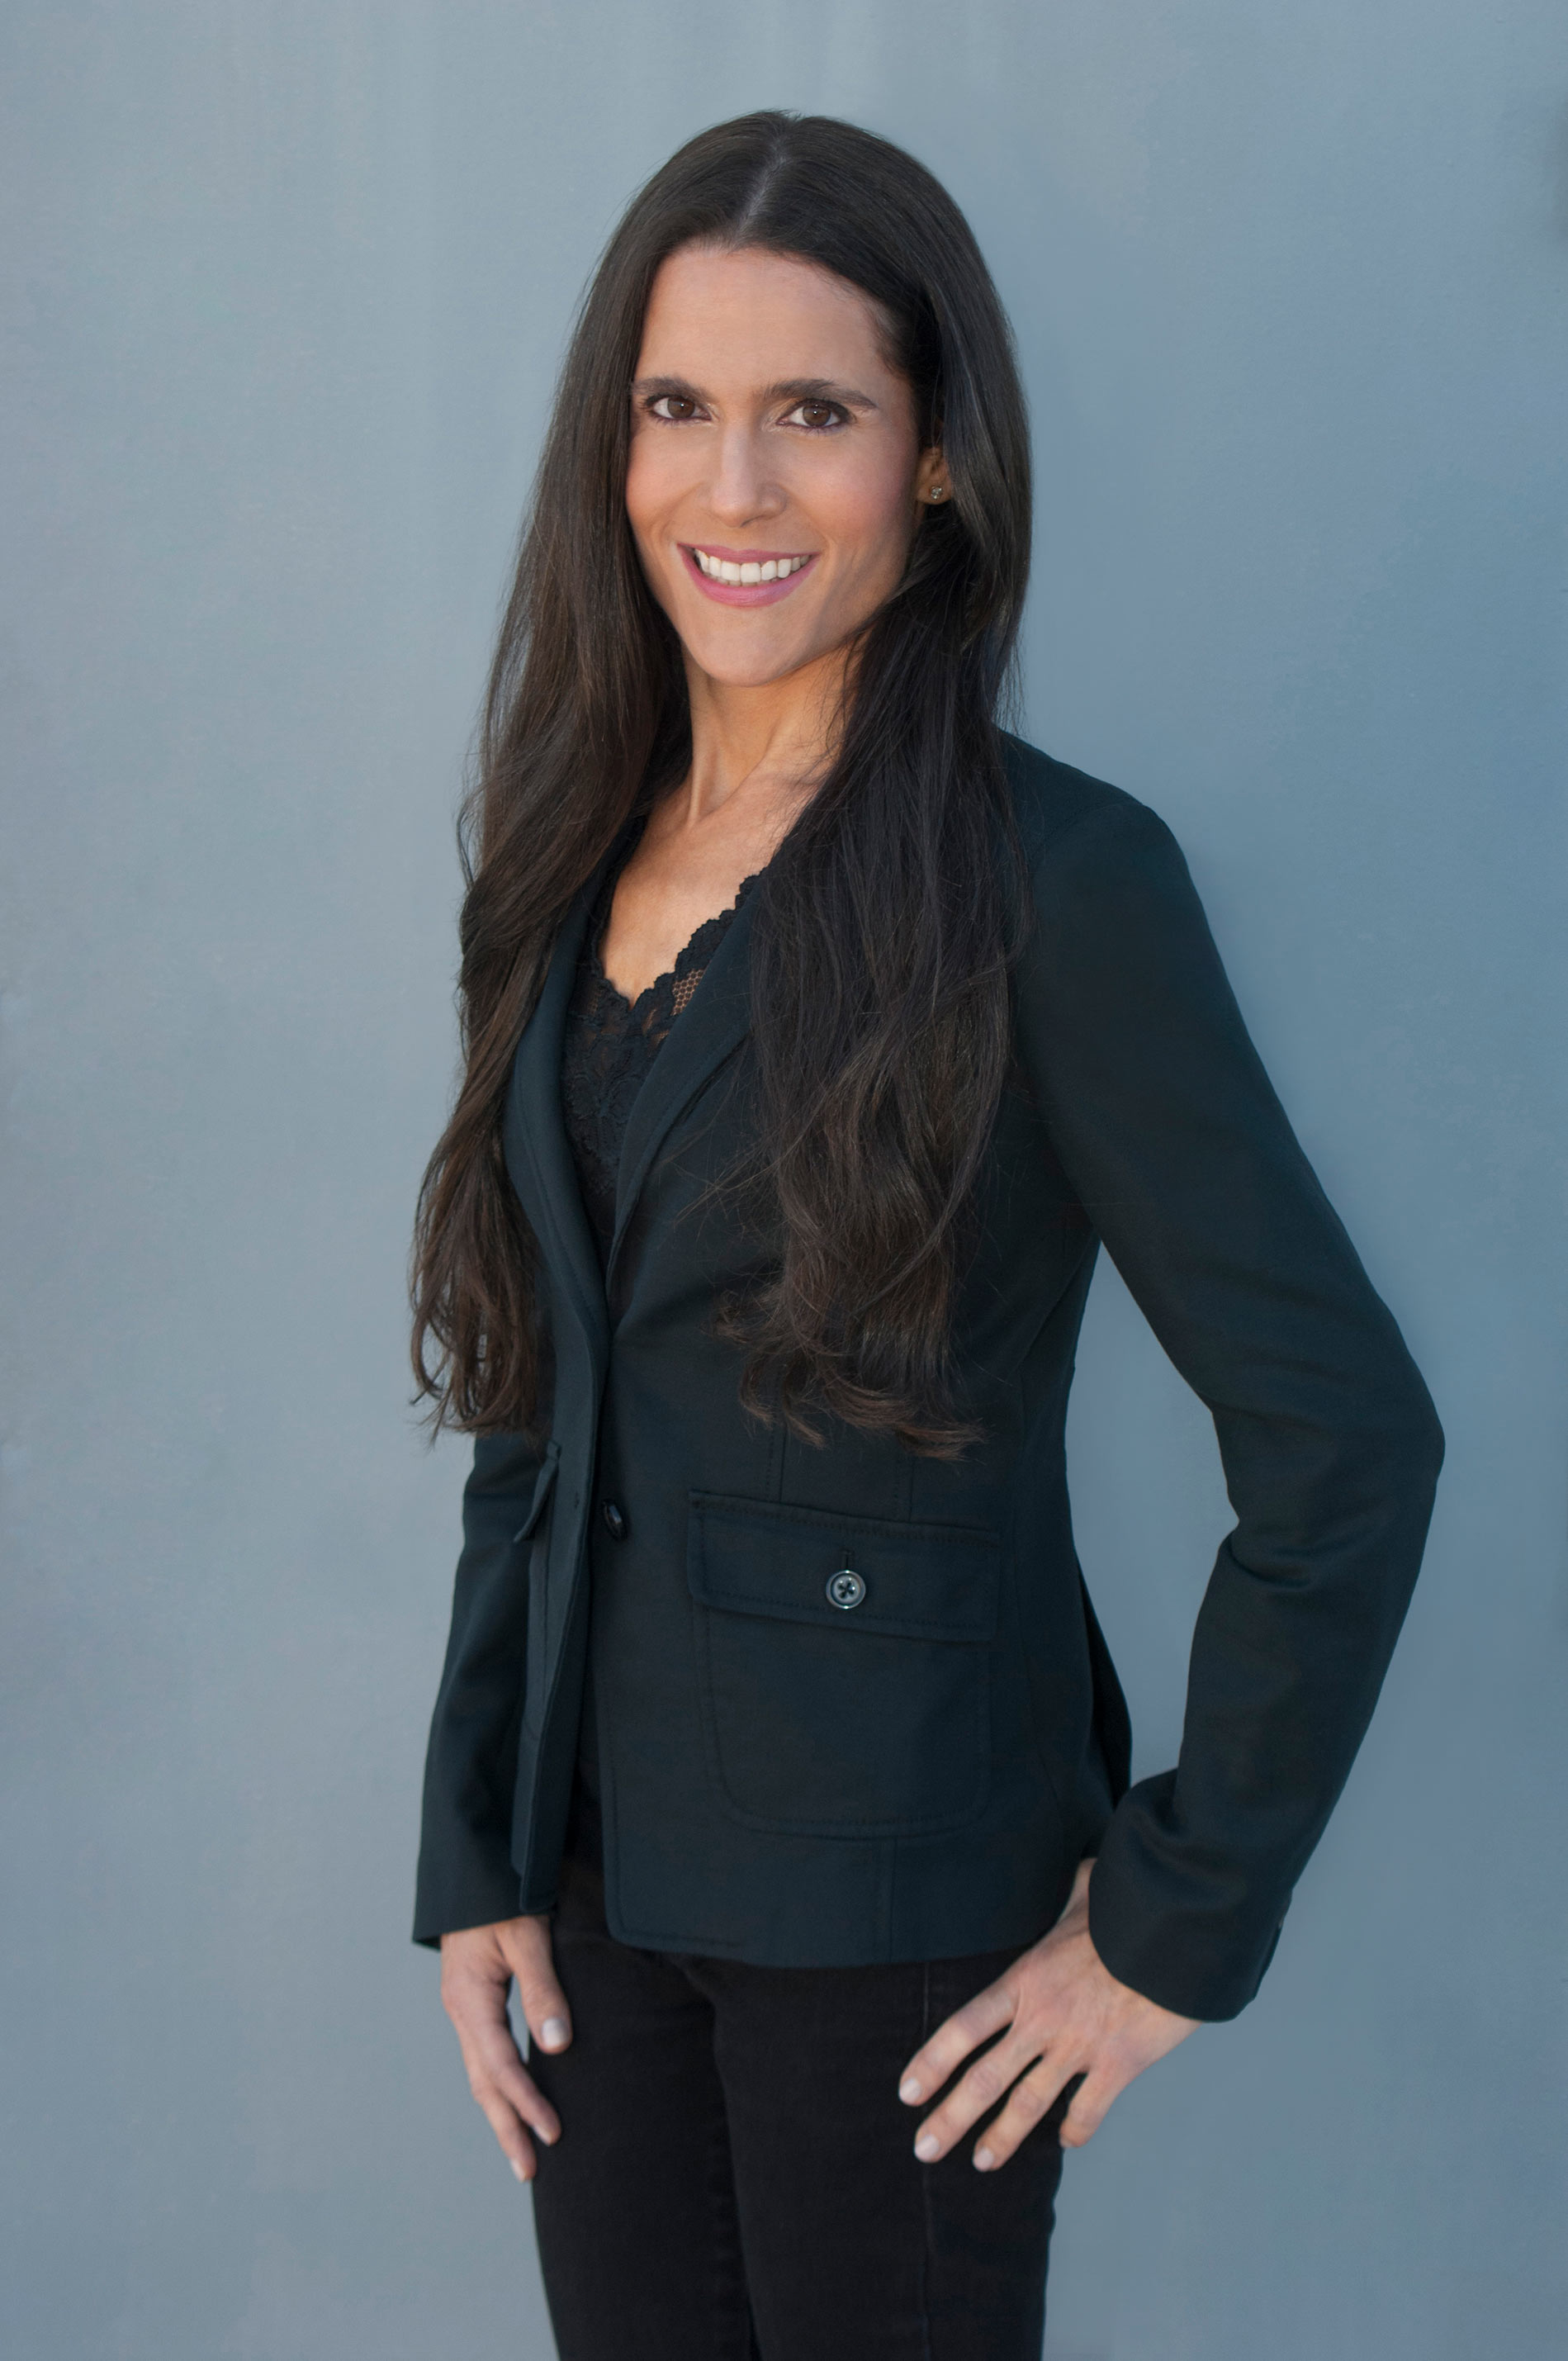 Dr. Alison Mitzner in black suit, pediatrician, mom expert, fit doc